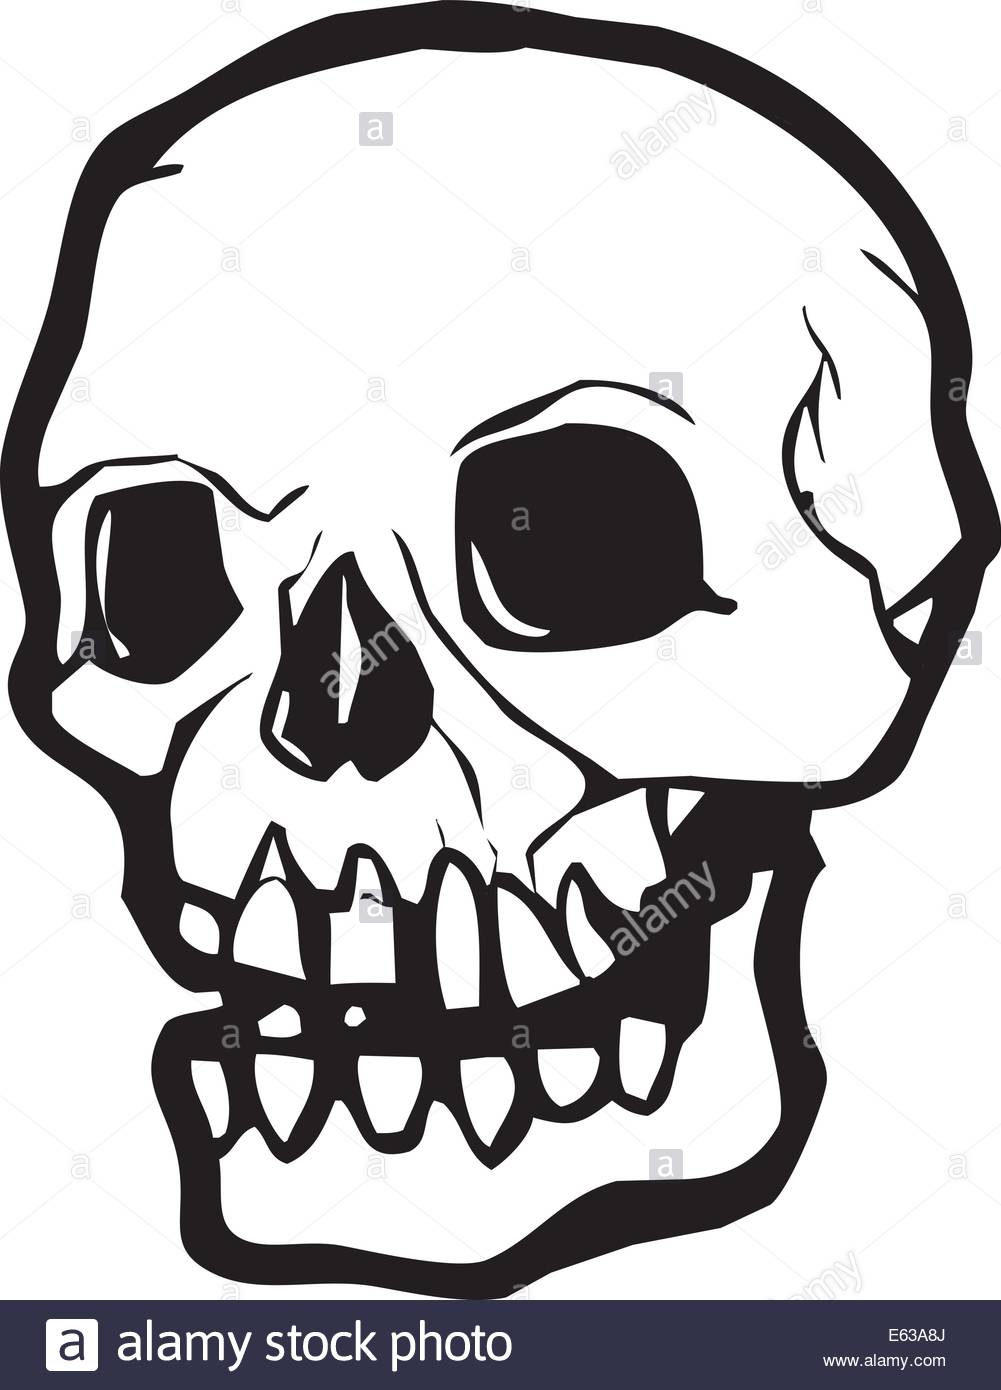 1001x1390 Human Skull In Simple Vector Style In Black And White Stock Vector